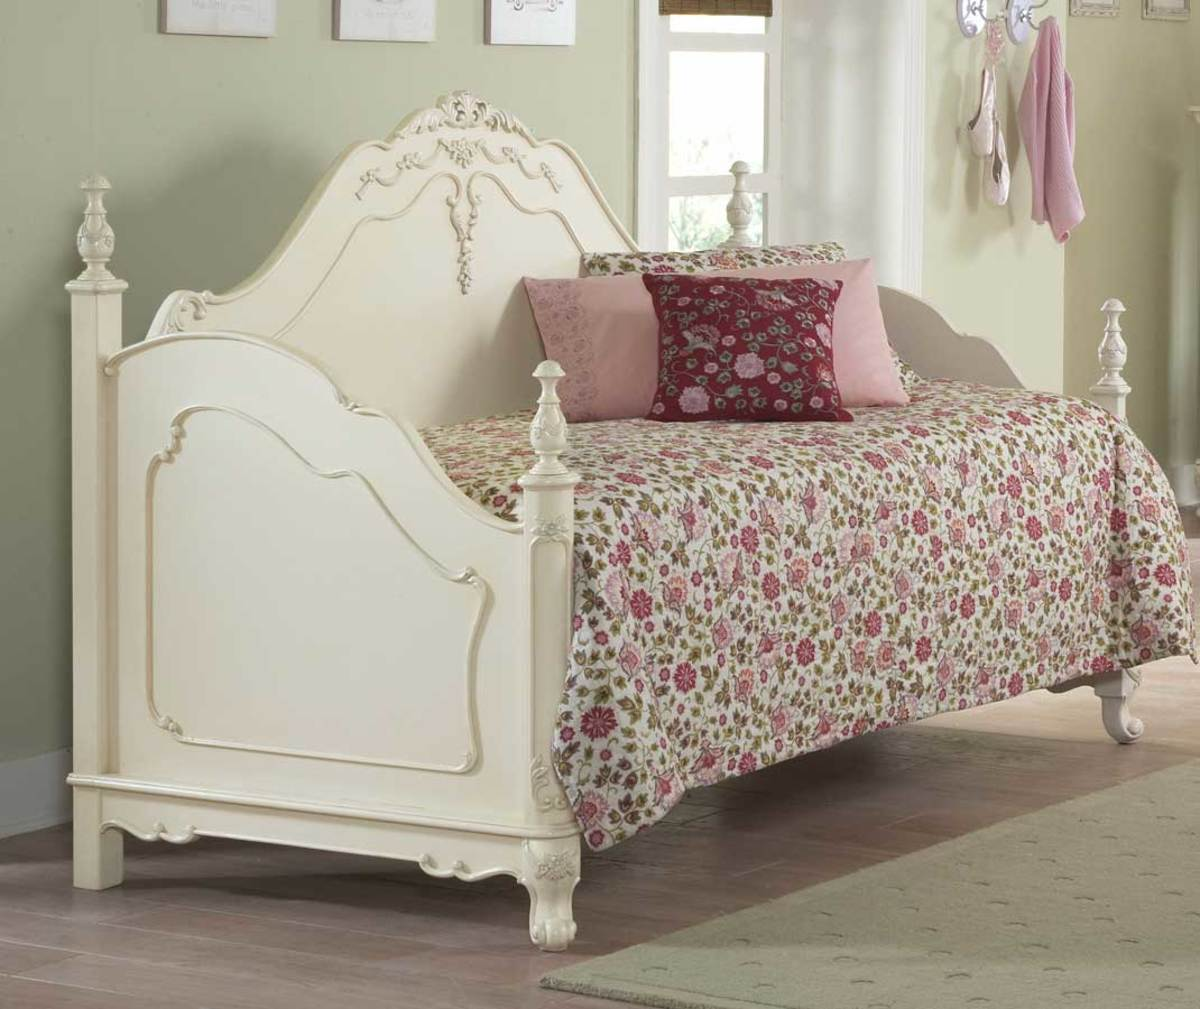 home improvements daybeds trundle a new luxury for the. Black Bedroom Furniture Sets. Home Design Ideas